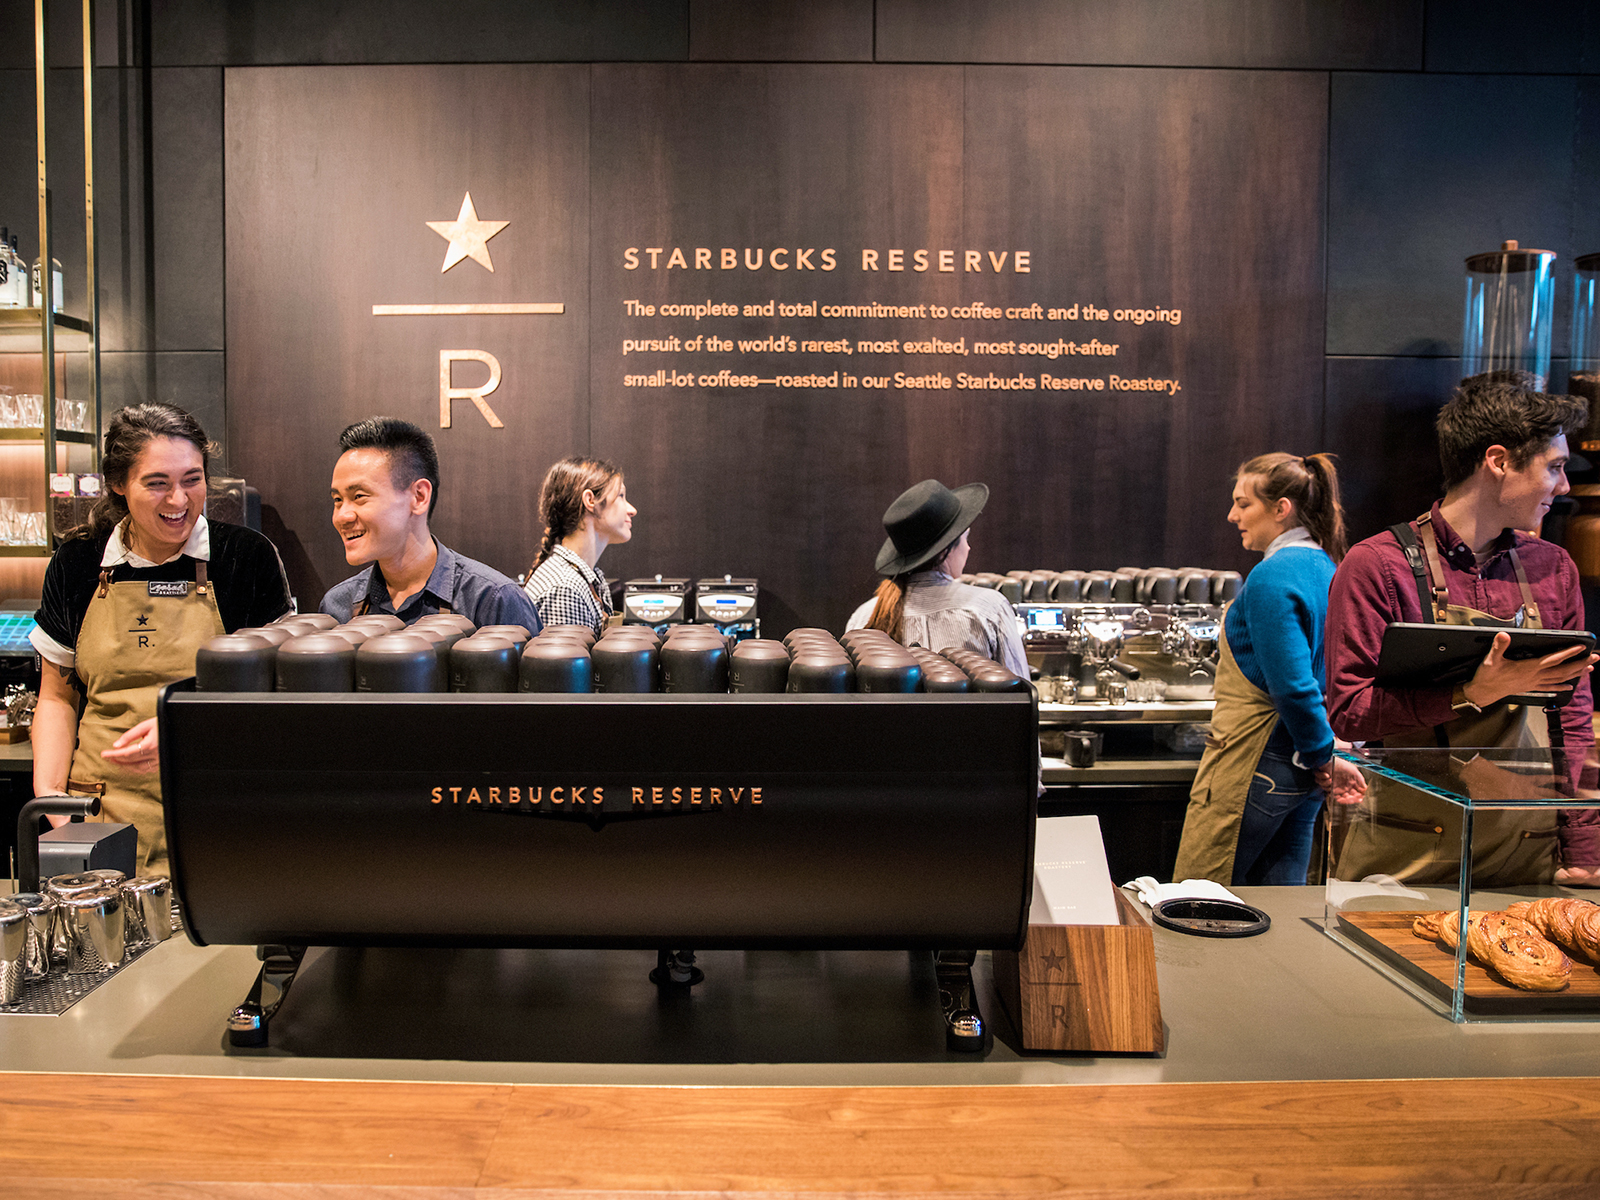 behind the counter at reserve store